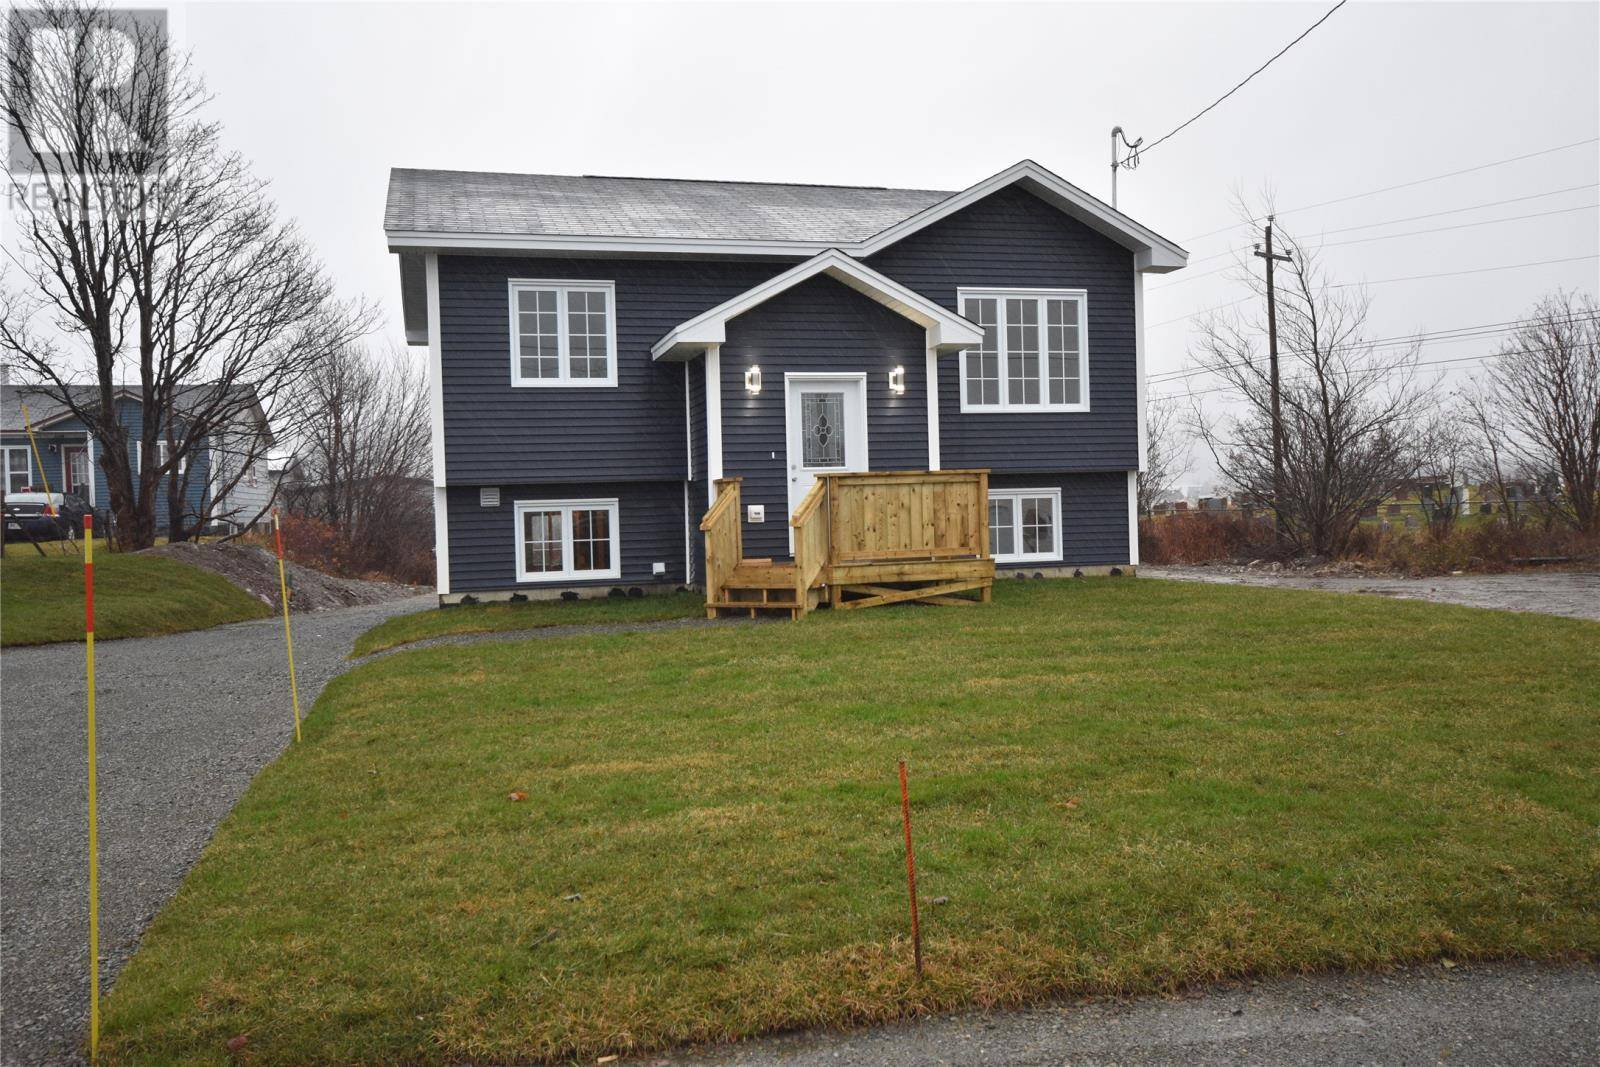 House for sale at 60 Church Rd Conception Bay South Newfoundland - MLS: 1209556